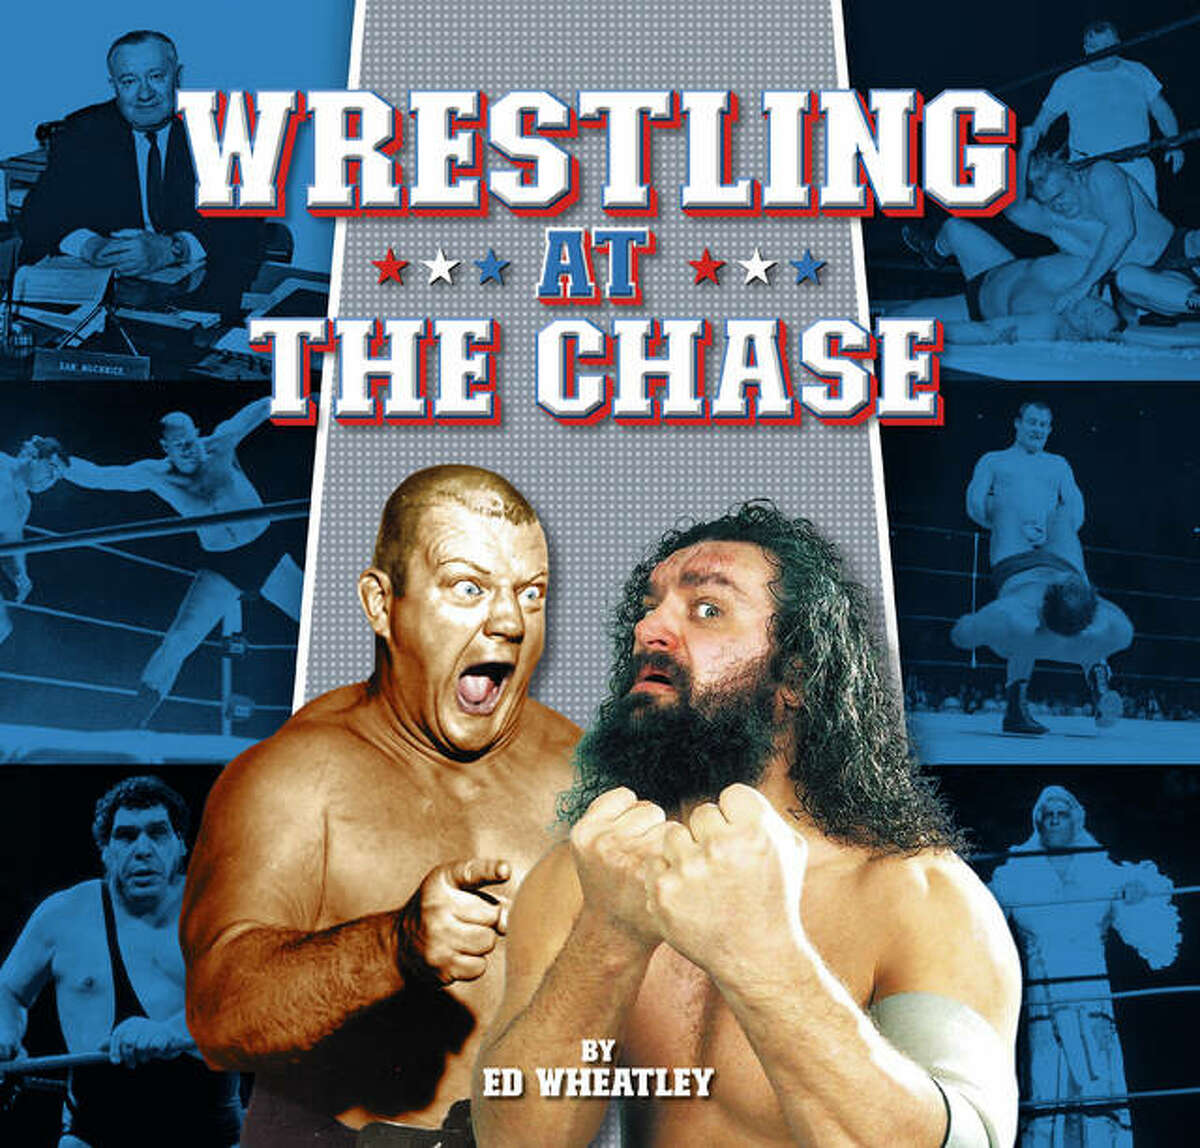 """""""Wrestling at the Chase,"""" by Ed Wheatley, is a coffee-table book about the famed show of the same name that premiered in 1959. The book was release last week by Reedy Press and is available wherever books are sold."""